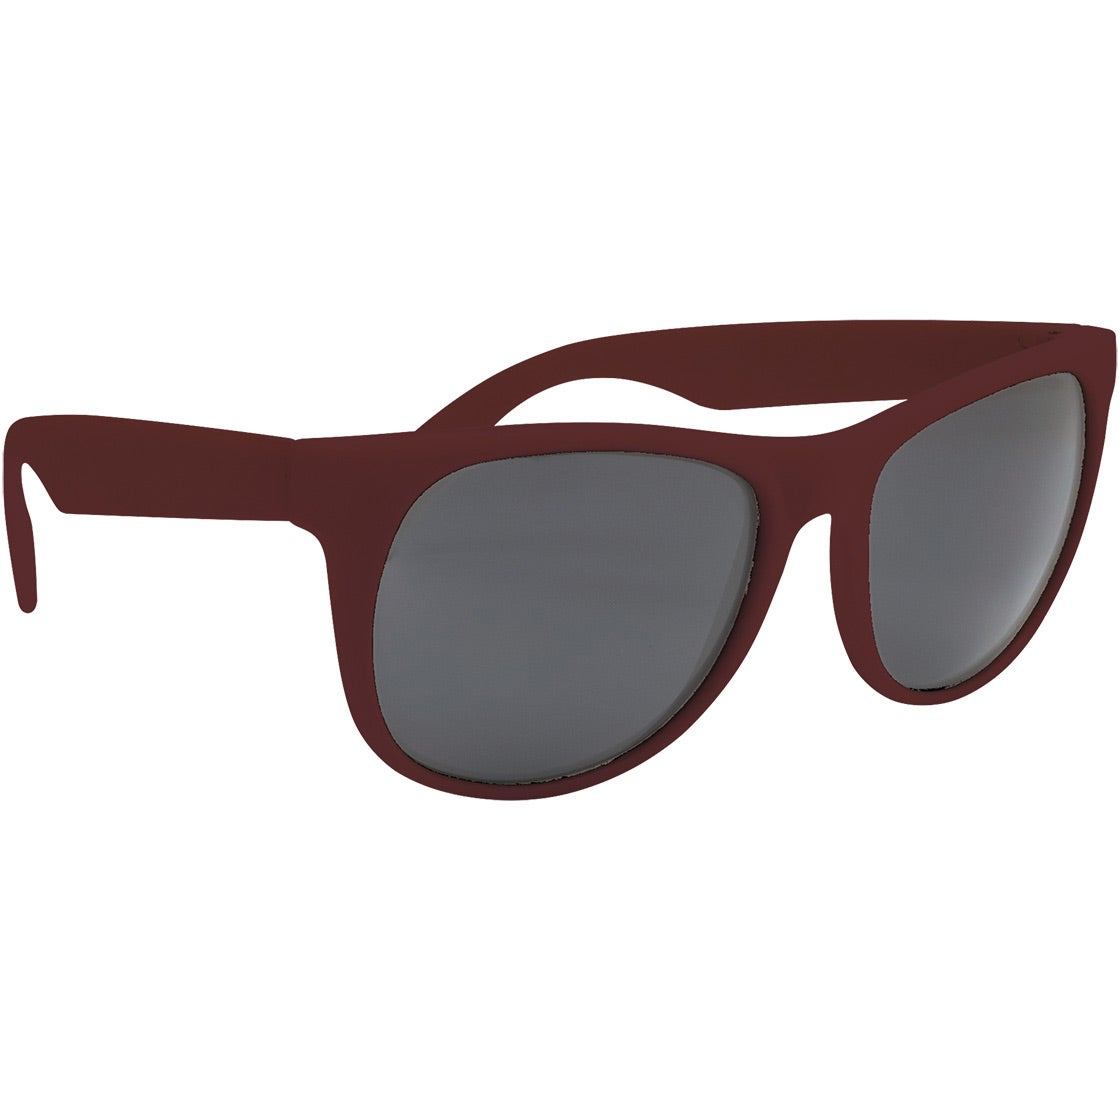 Promotional Rubberized Sunglasses with Custom Logo for $0.69 Ea.